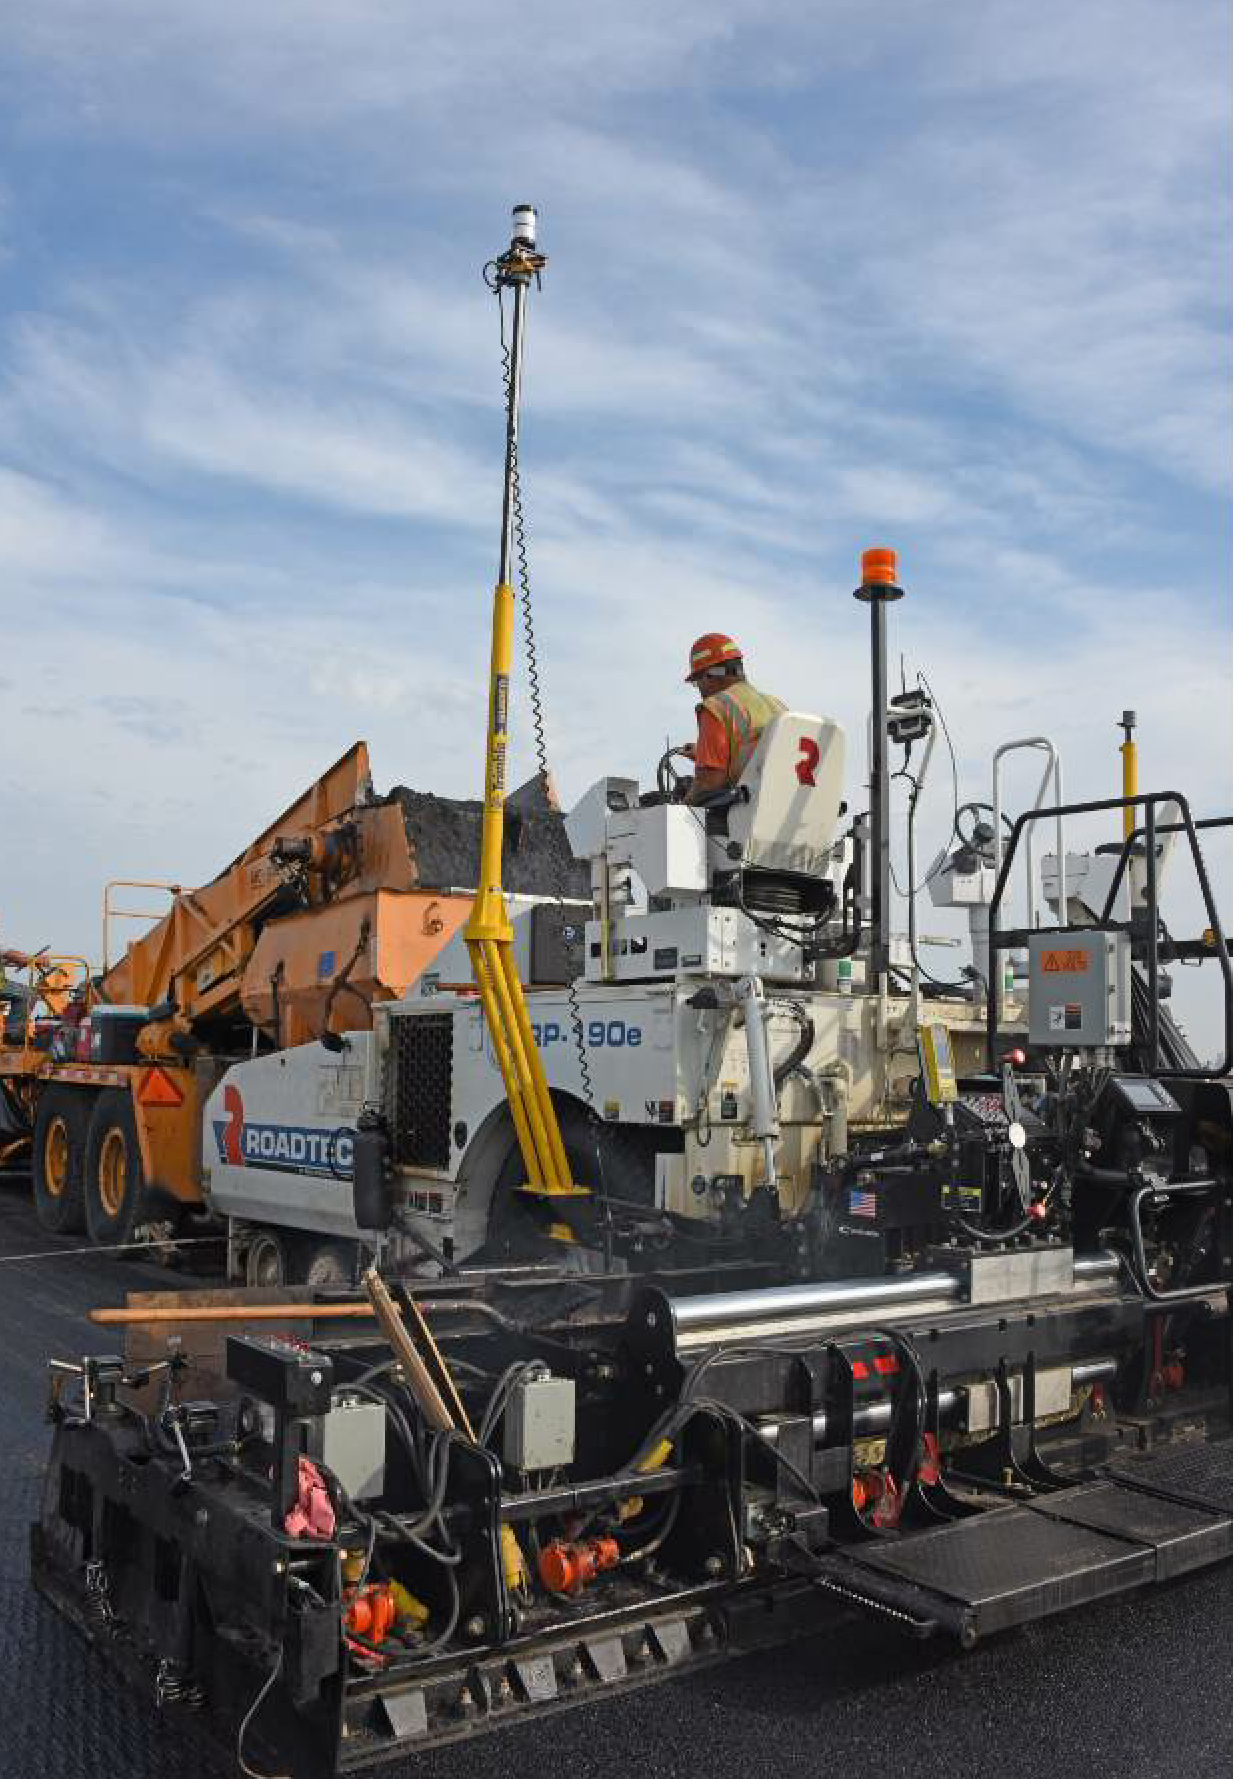 The Trimble 3D Paving PCS900 Control System included the Universal Total Station on-site with the mast-mounted target on the tow arm of the paver with a Trimble MT900 prism on top and a slope sensor. A Trimble CB460 control box displays the 3D design model and the position of the screed.